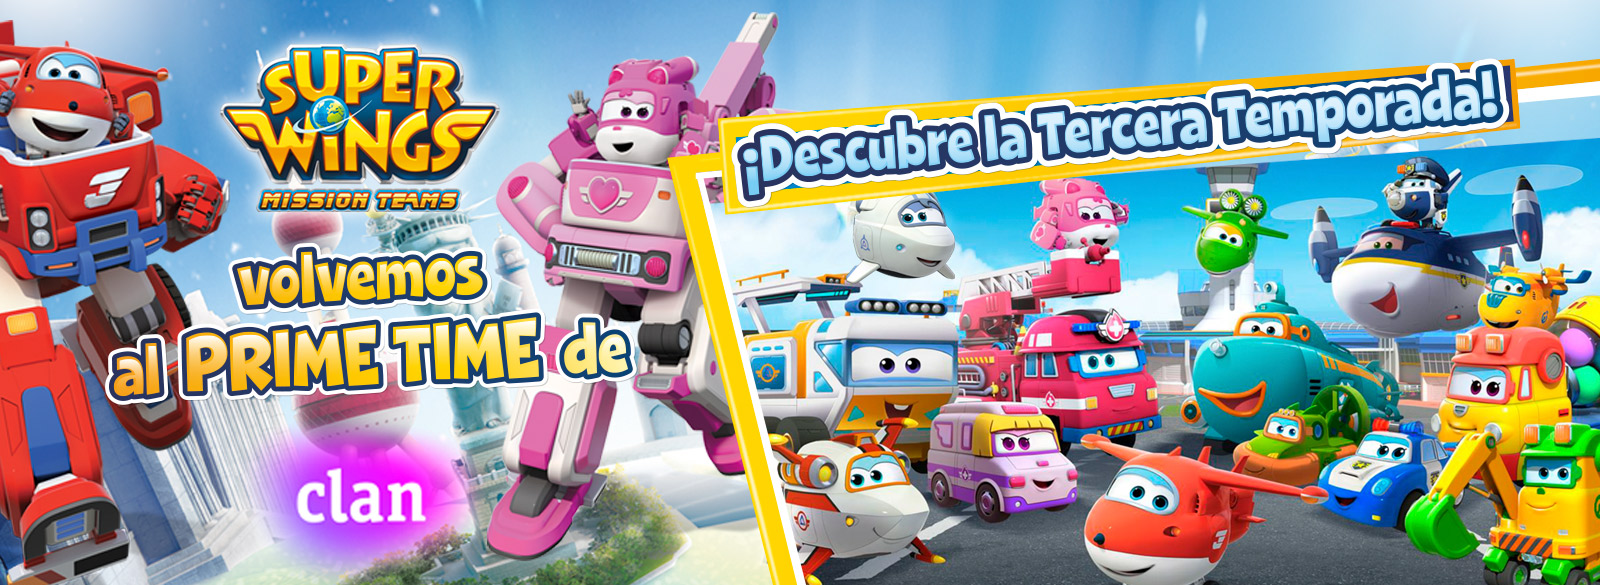 Super Wings Prime-Time